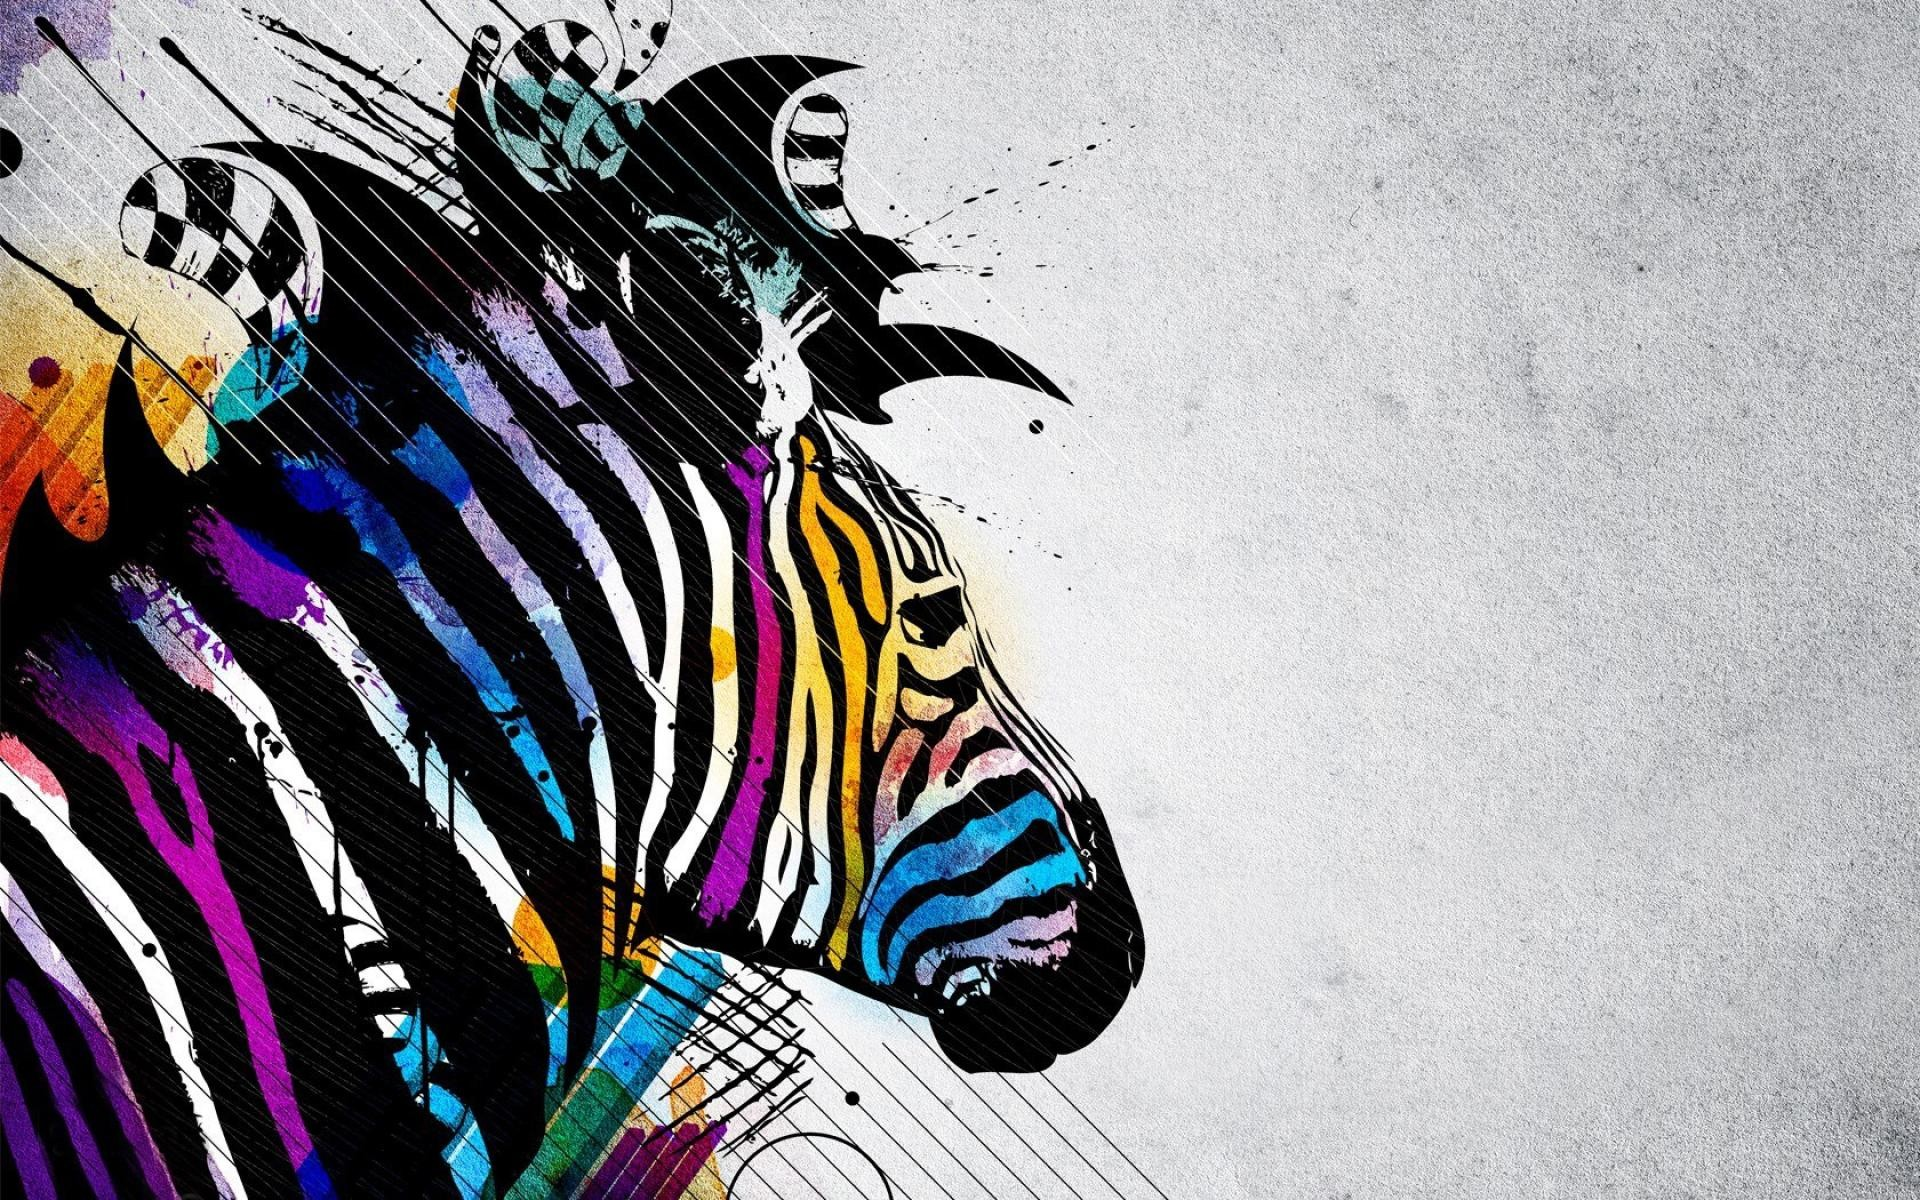 Rainbow Zebra Background Designs 183 ① Wallpapertag